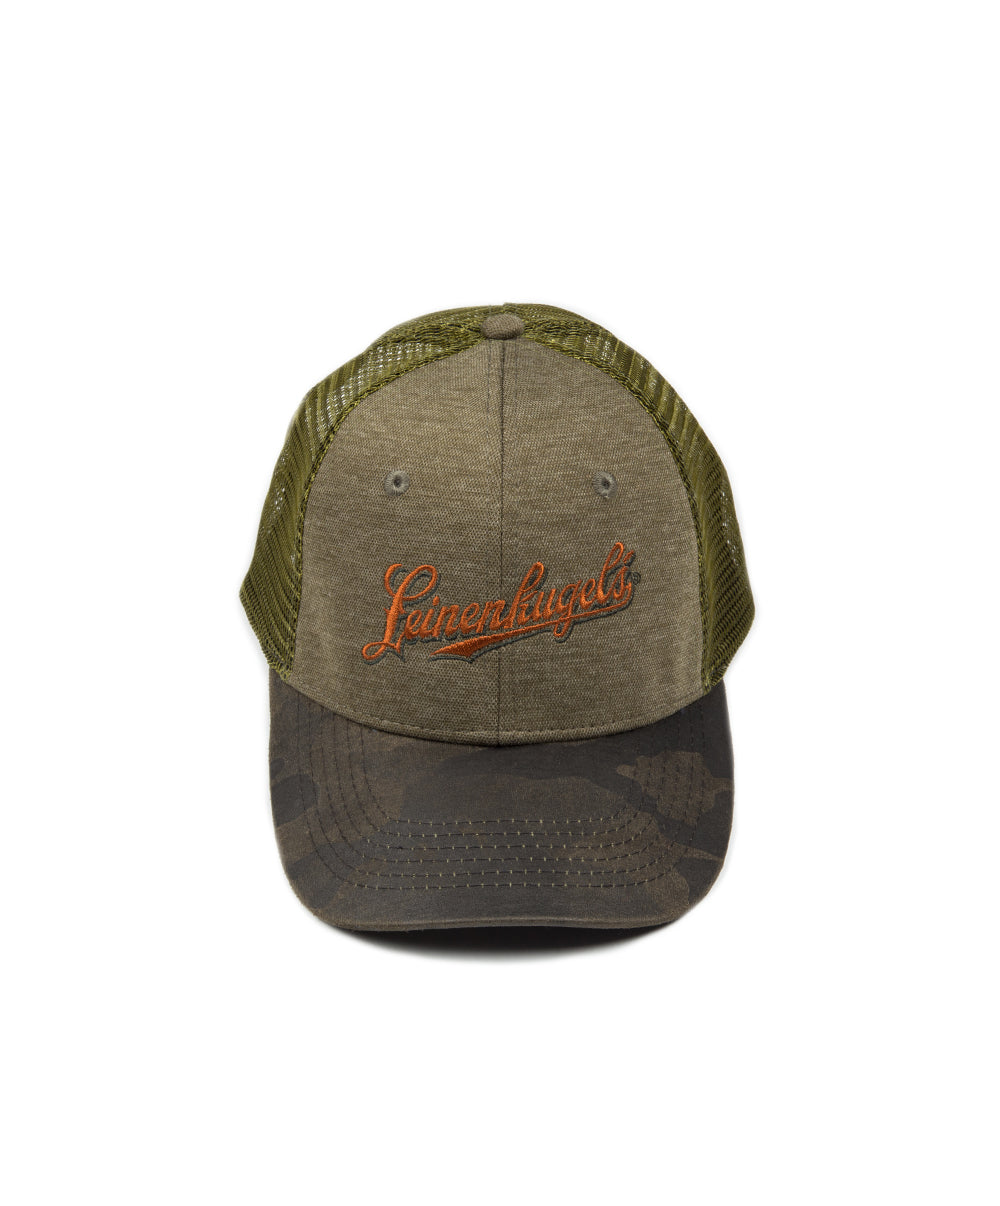 STAG CAMO HAT